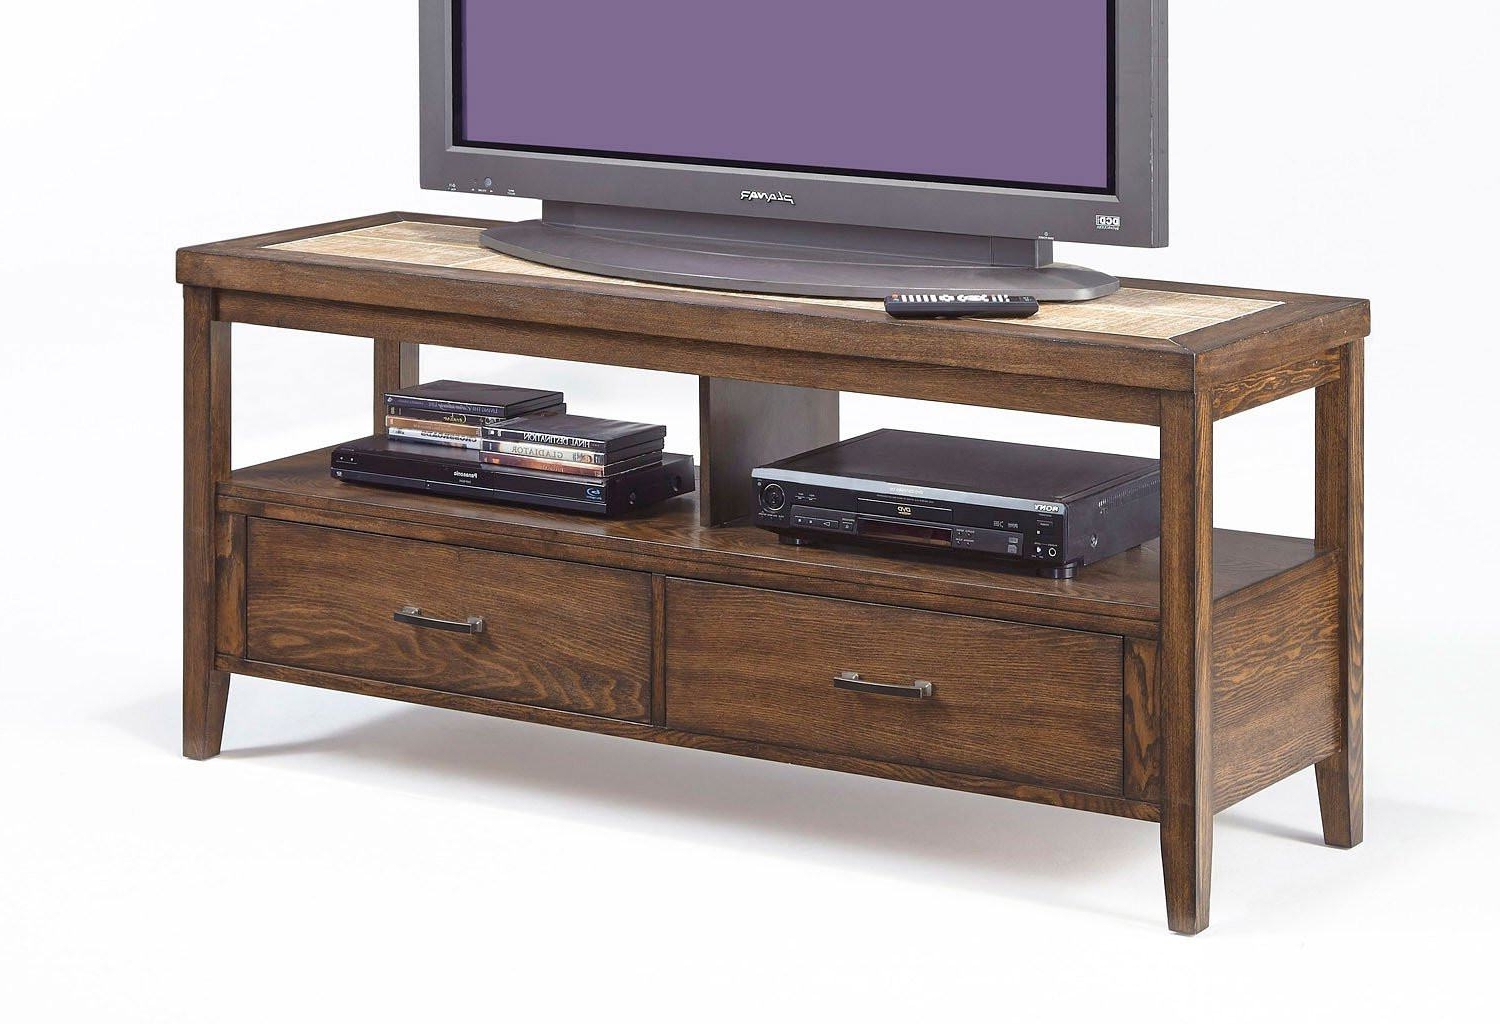 25 Creative 54 Inch Tv Stand Pictures | Cakestandlady With Regard To Sinclair Blue 54 Inch Tv Stands (View 11 of 20)